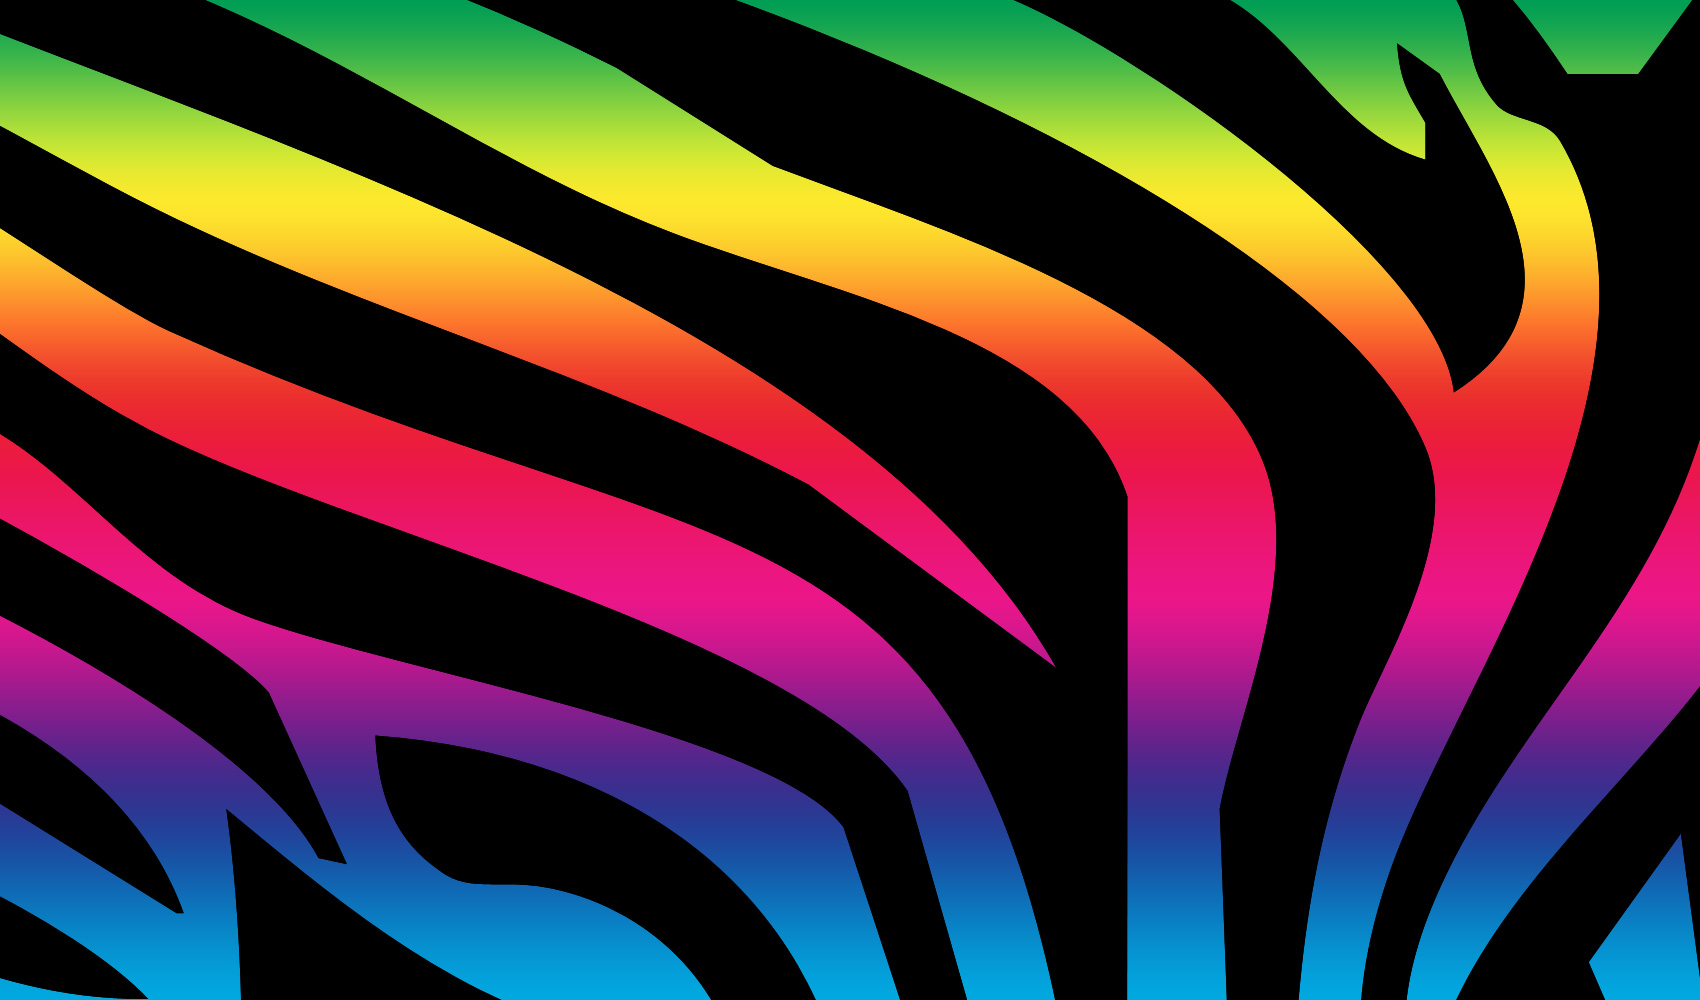 Rainbow Cheetah Print Wallpaper Images Pictures   Becuo 1700x1000